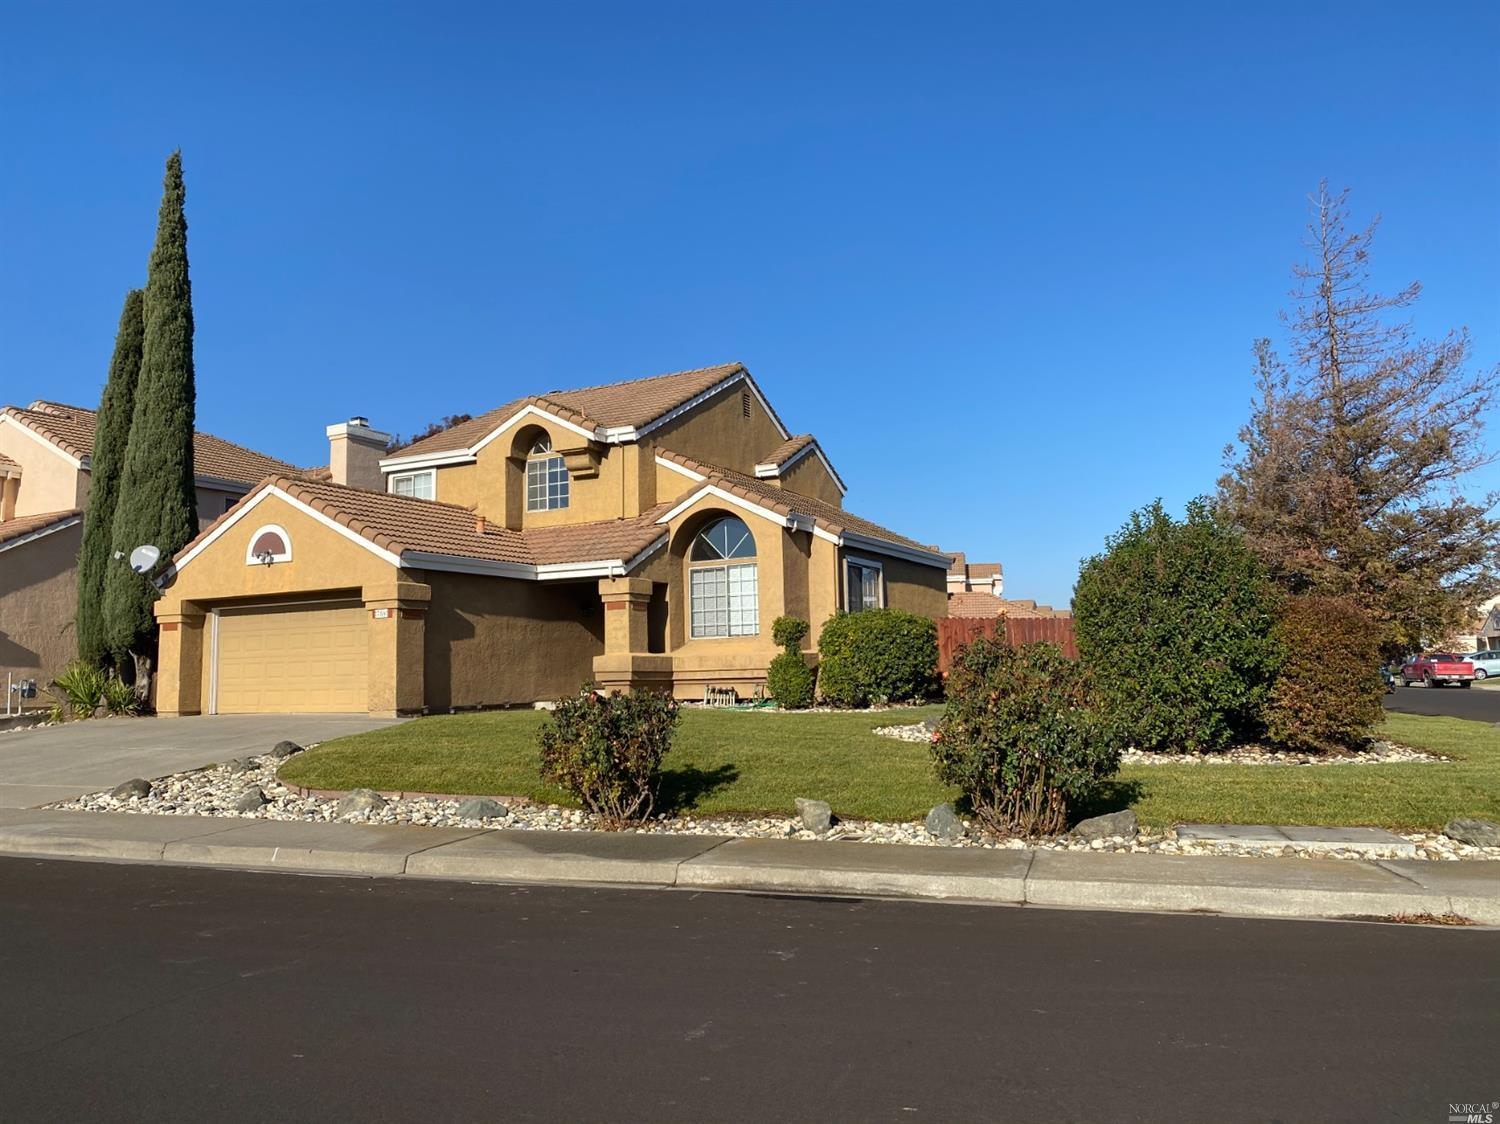 New carpet, Fresh paint and landscape.  Large corner lot. First floor bedroom or office.